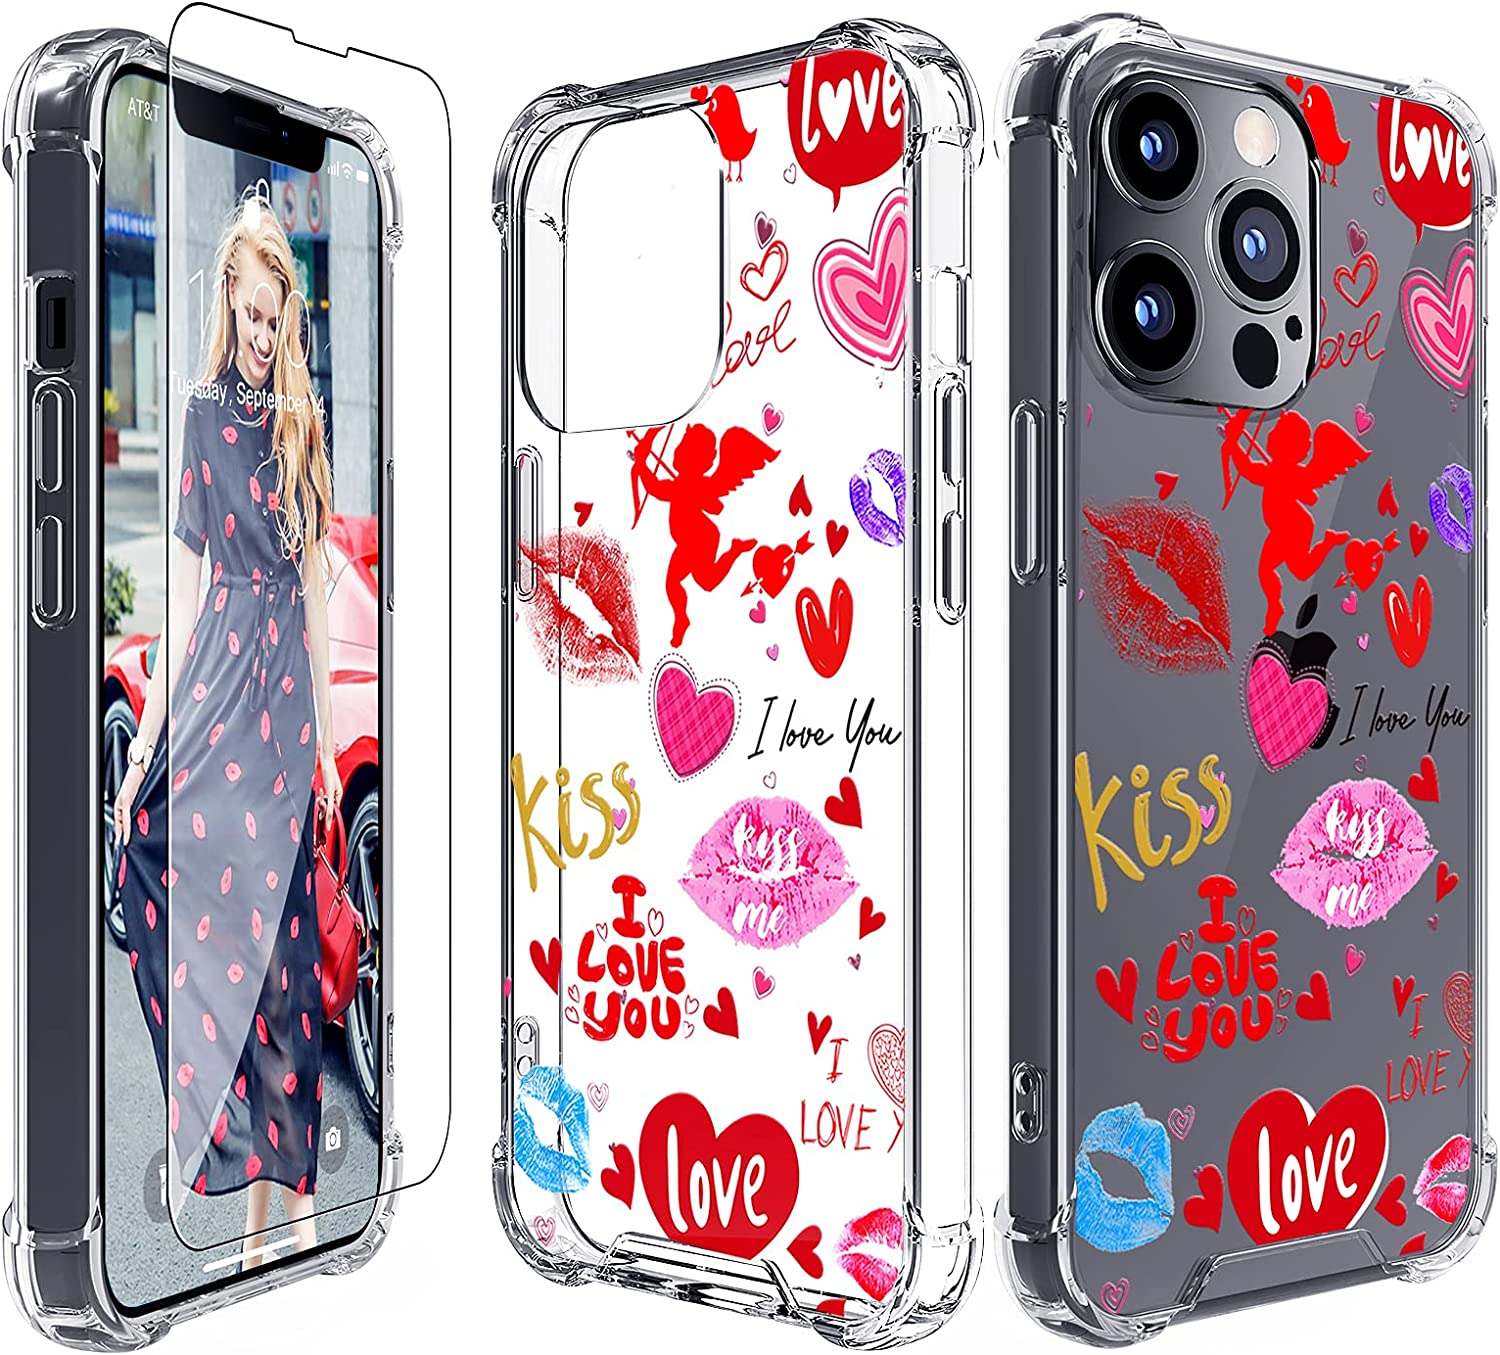 Rhinenet Slim Case Compatible for iPhone 13 Pro Max Embossed Clear Cute Soft Phone Cover Shockproof Bumper Hybrid Fashion Women Girl Lip Print Love Kiss Pattern Protective Back Shell+Screen Protector